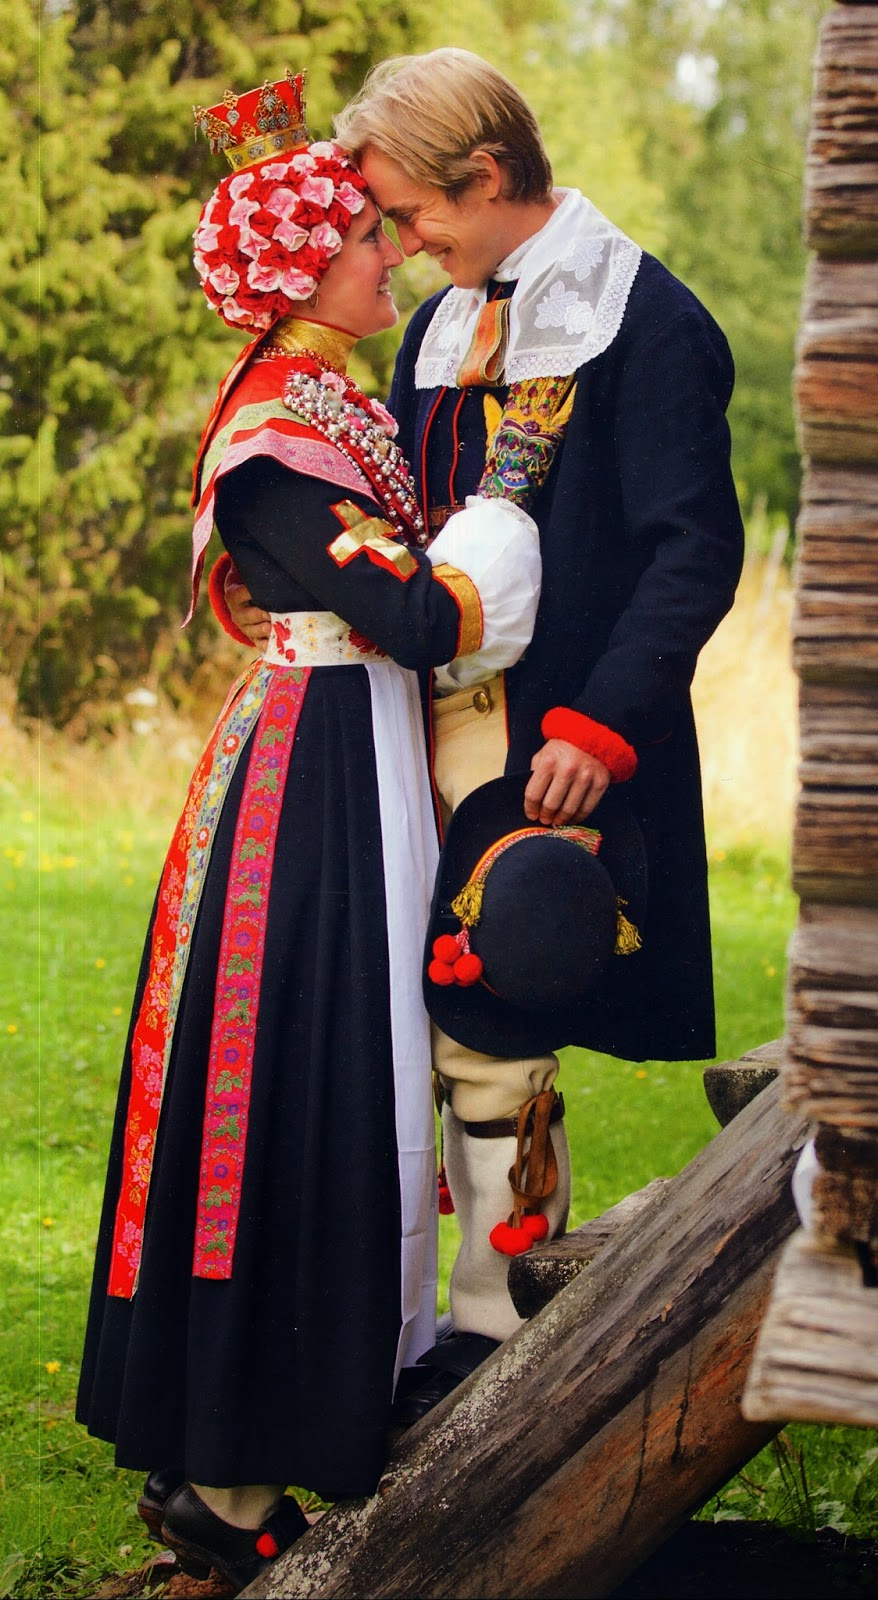 traditional clothing swedish dalarna folkcostume sweden europe bridal outfit western couple embroidery short wearing typical leksand rattvik